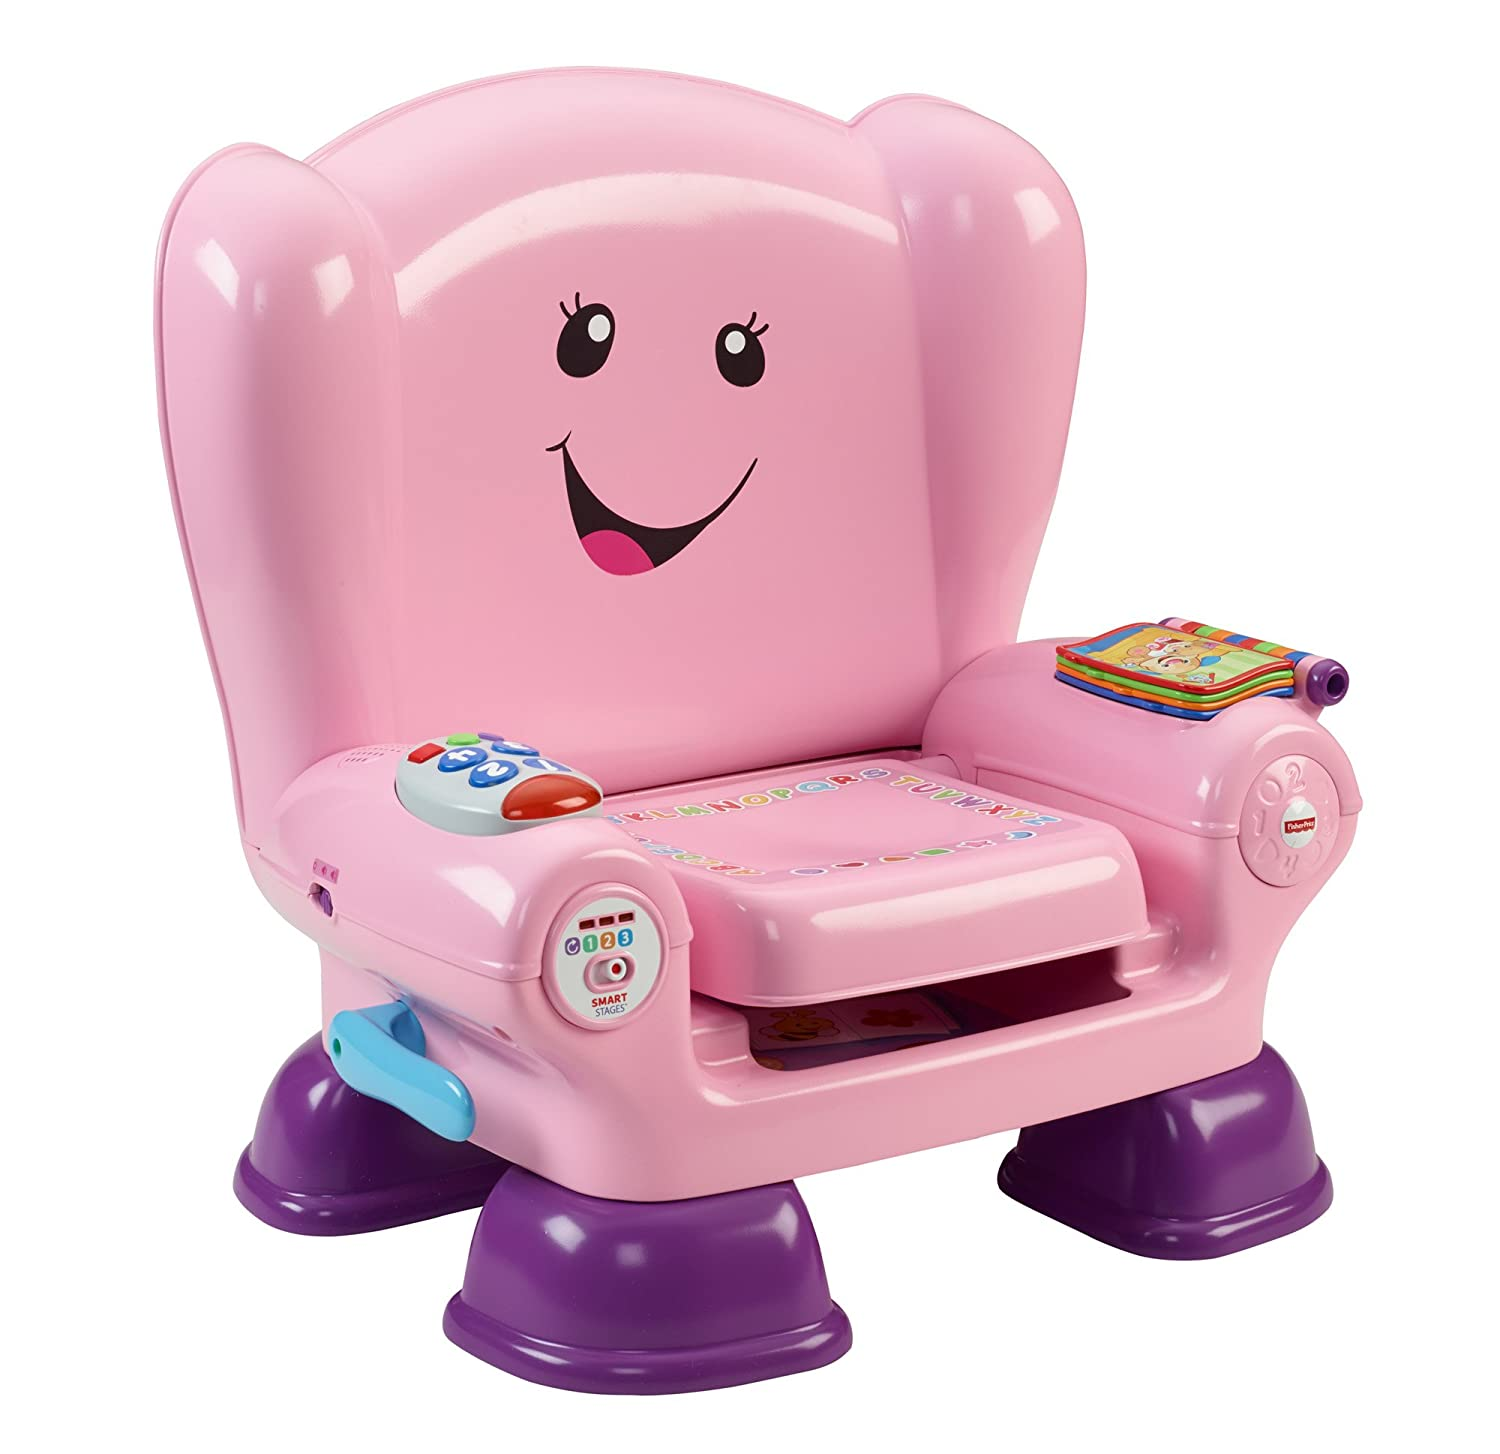 Fisher price smart stages chair - Fisher Price Smart Stages Chair 23